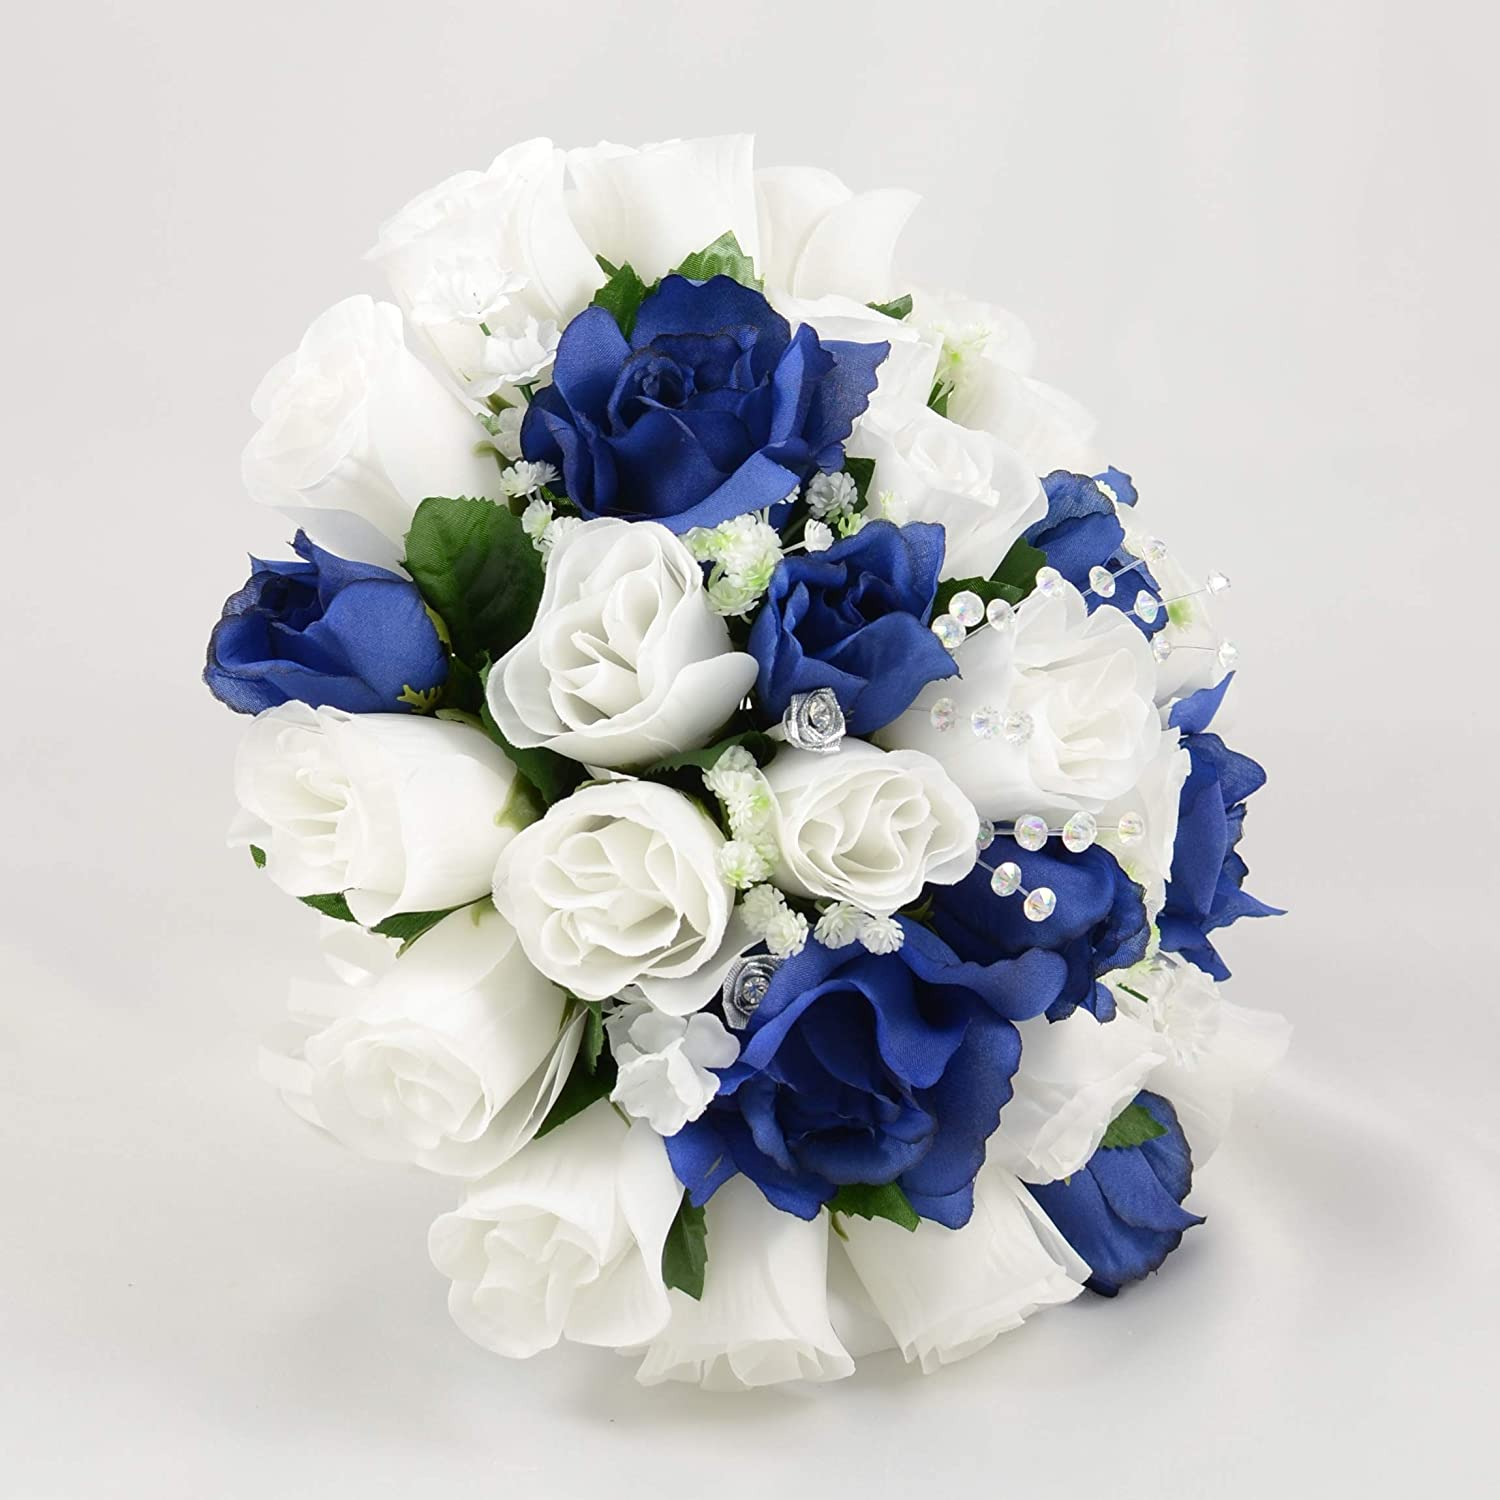 Silk Wedding Flowers Hand Made By Petals Polly Brides Posy White